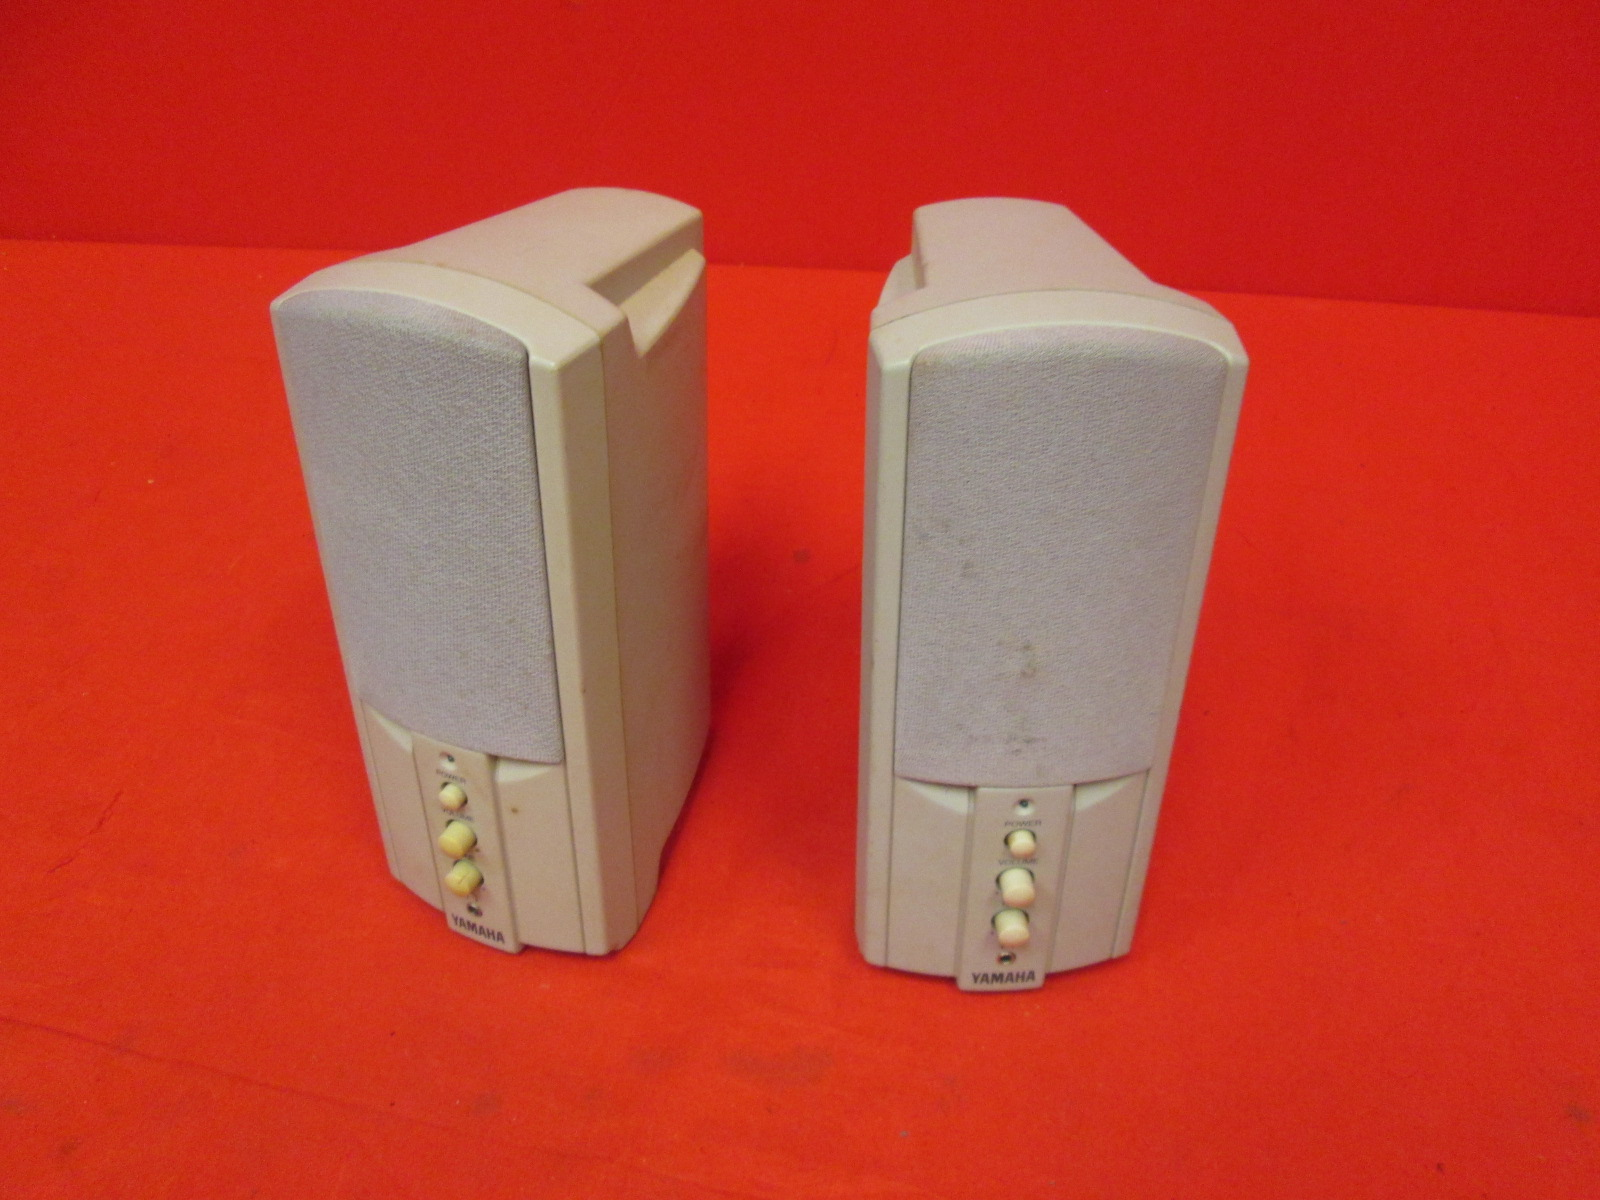 Image 0 of Yamaha YST-M7 Powered Multimedia Computer Speakers Beige Incomplete